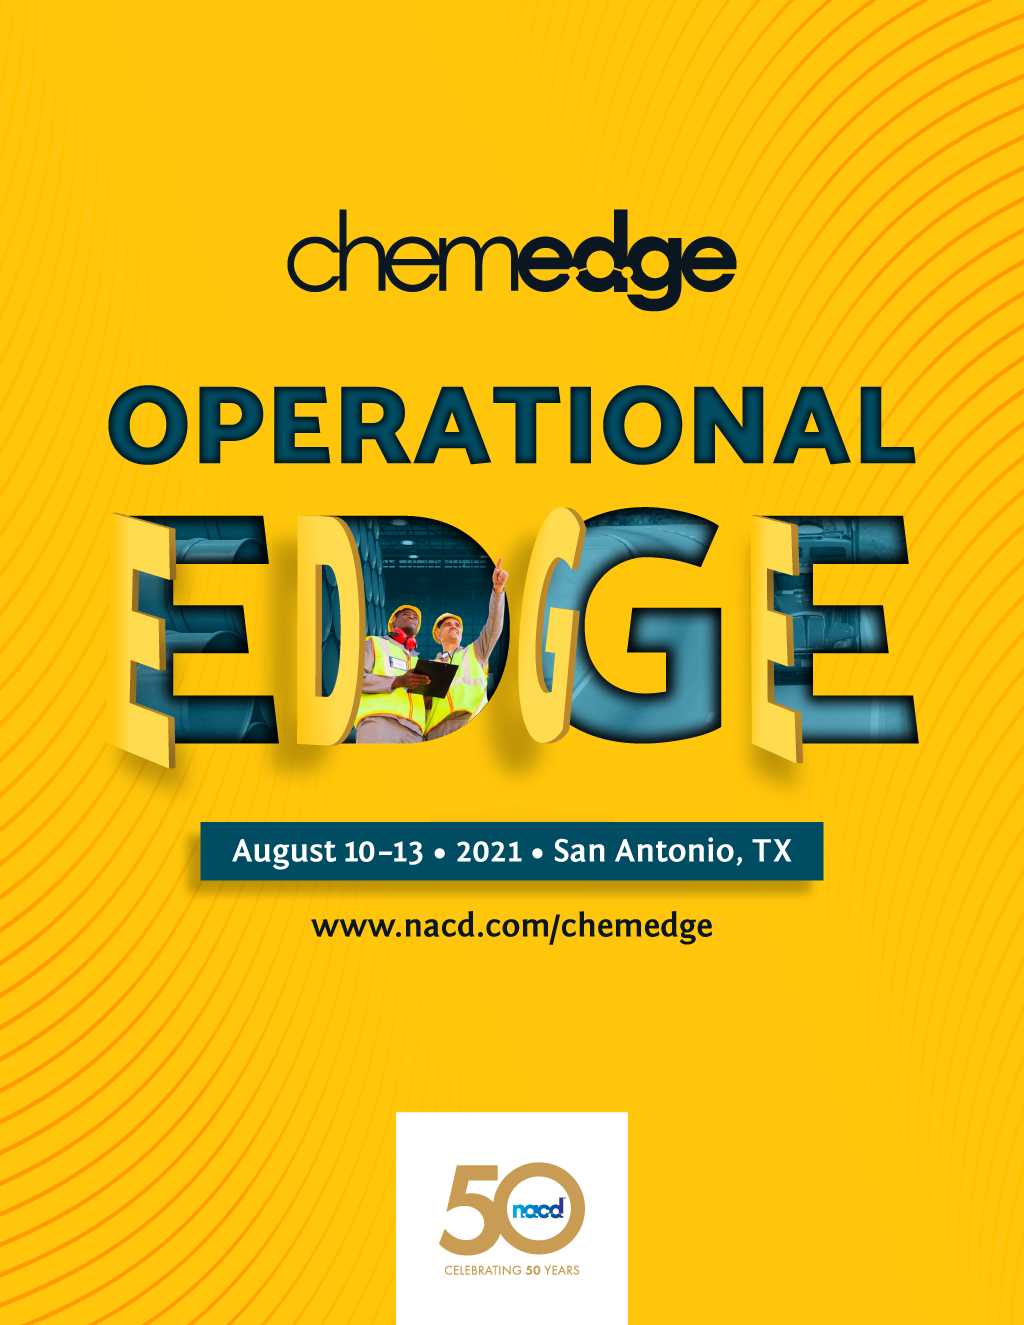 """And the last initial branding concept idea #4 with the """"Operational Edge"""" marketing tagline."""